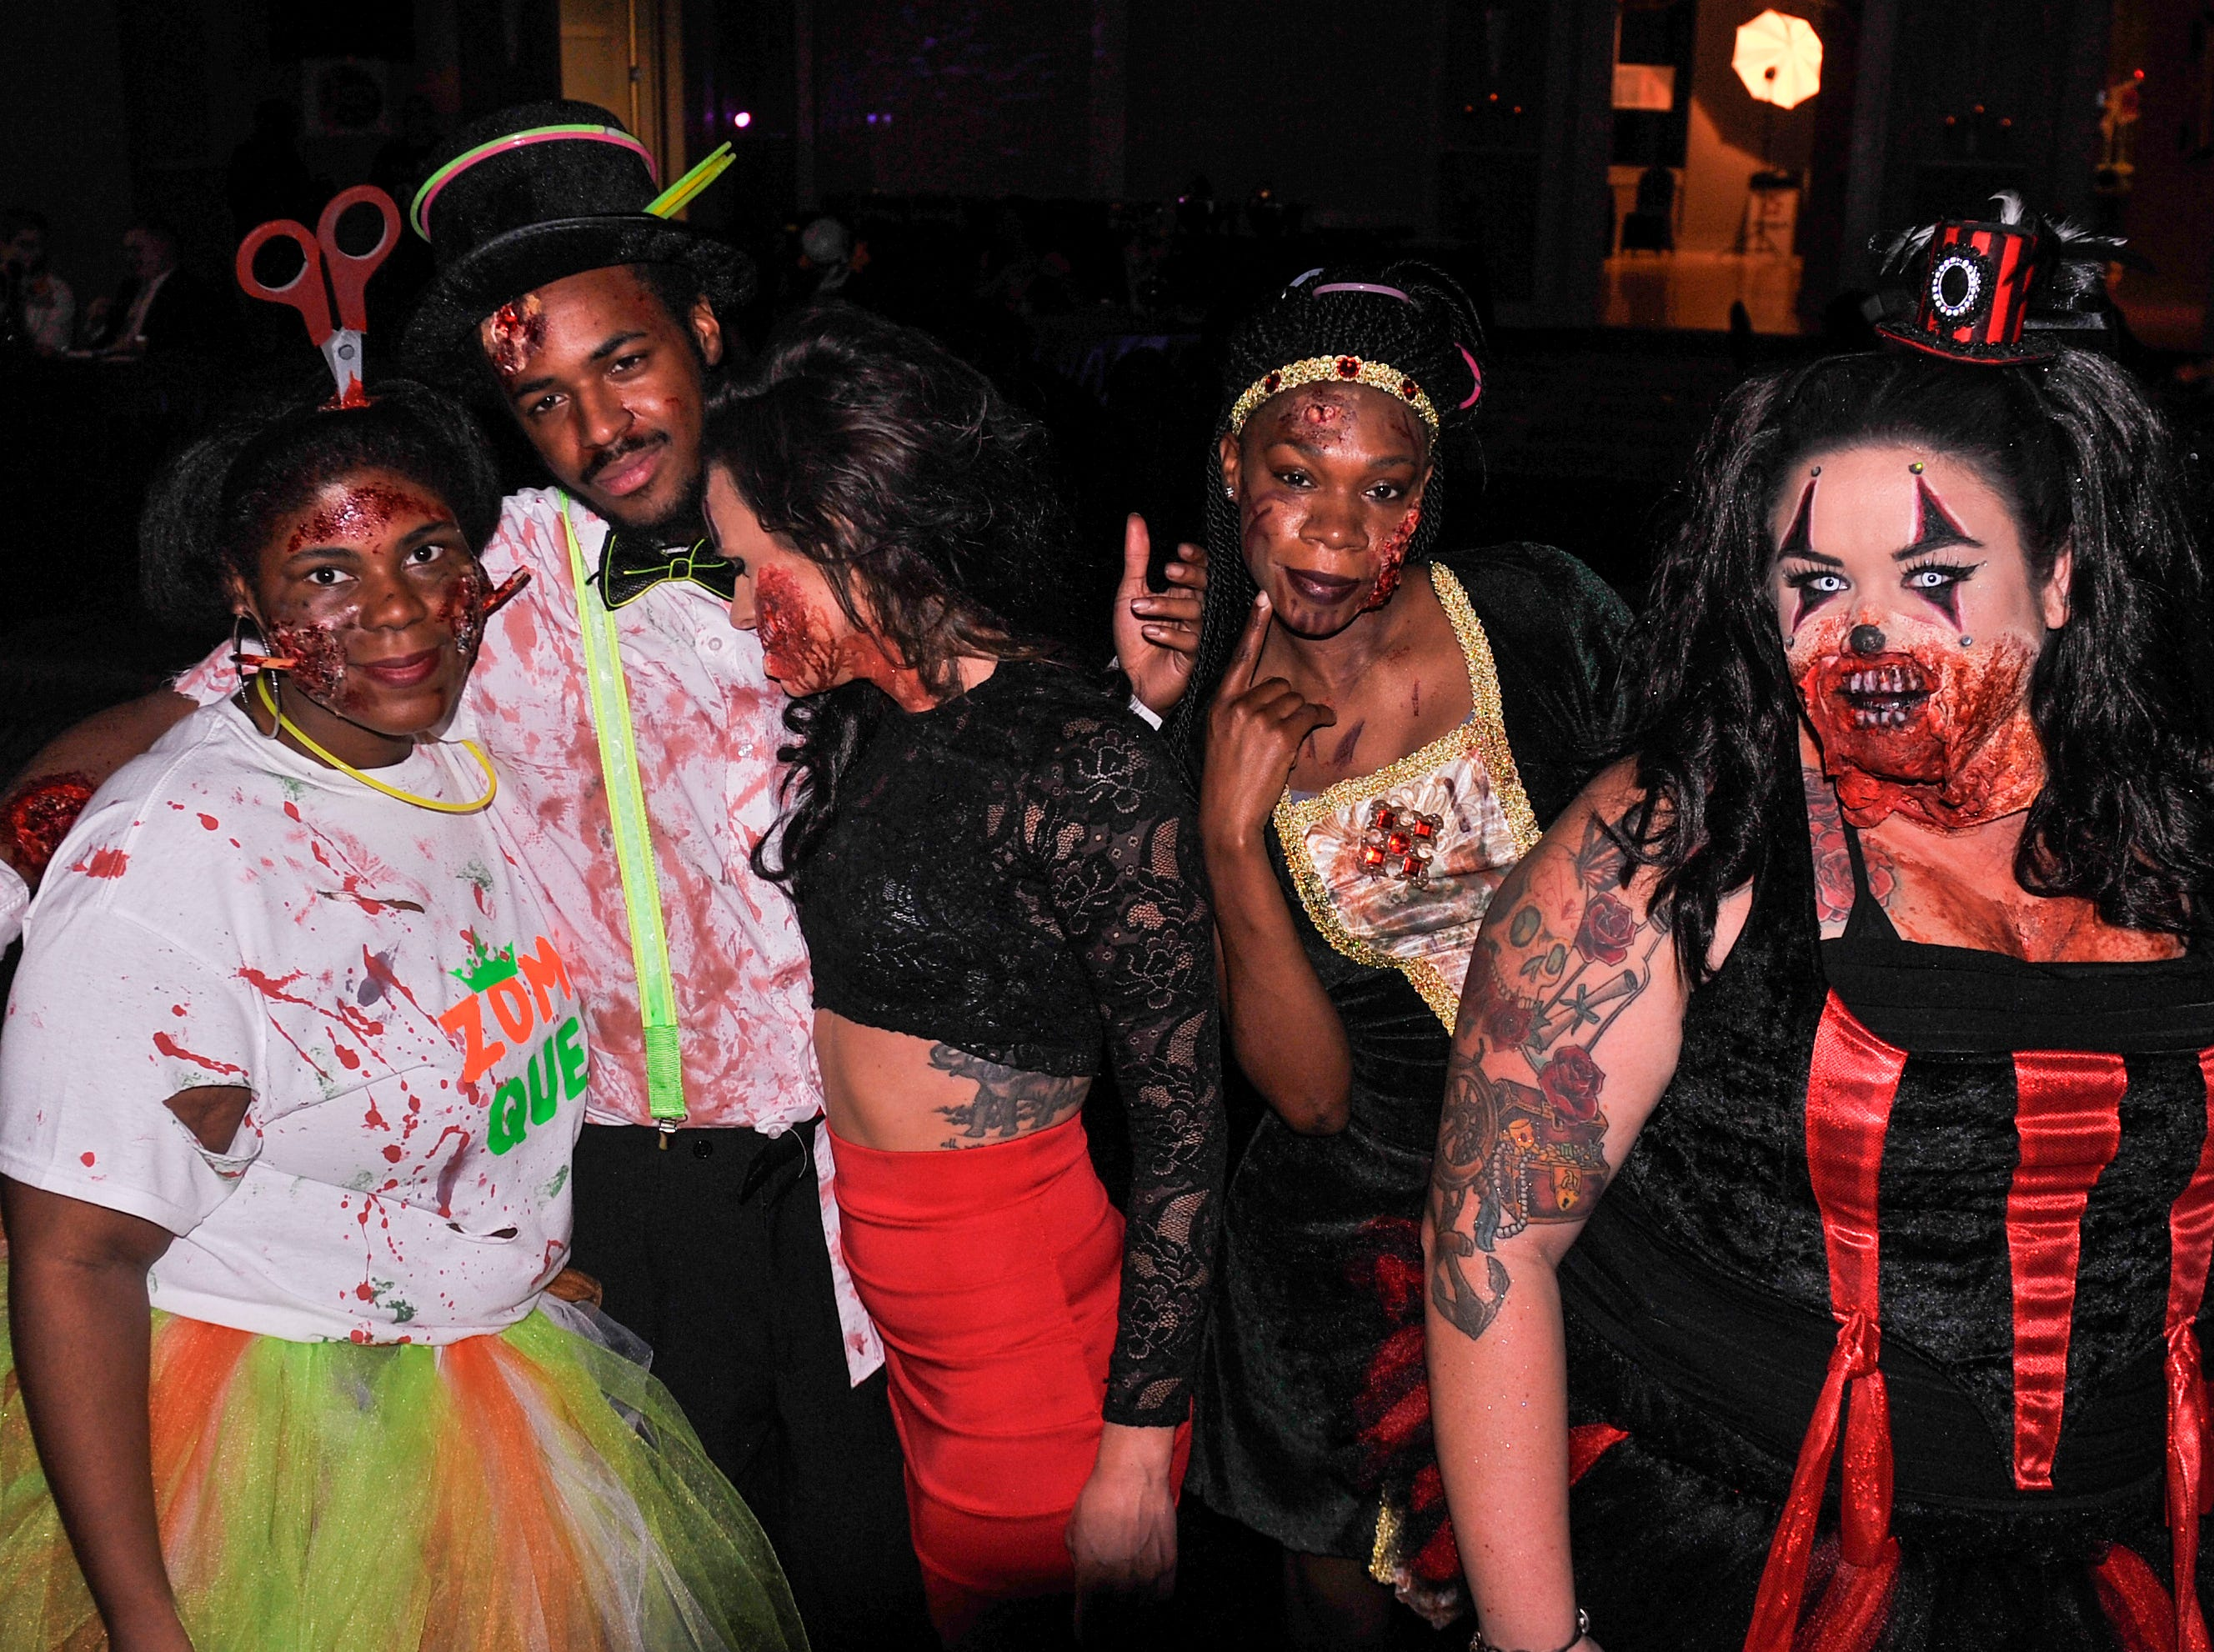 Dressed up a the Zombie Prom on Saturday, Oct. 20, 2018.